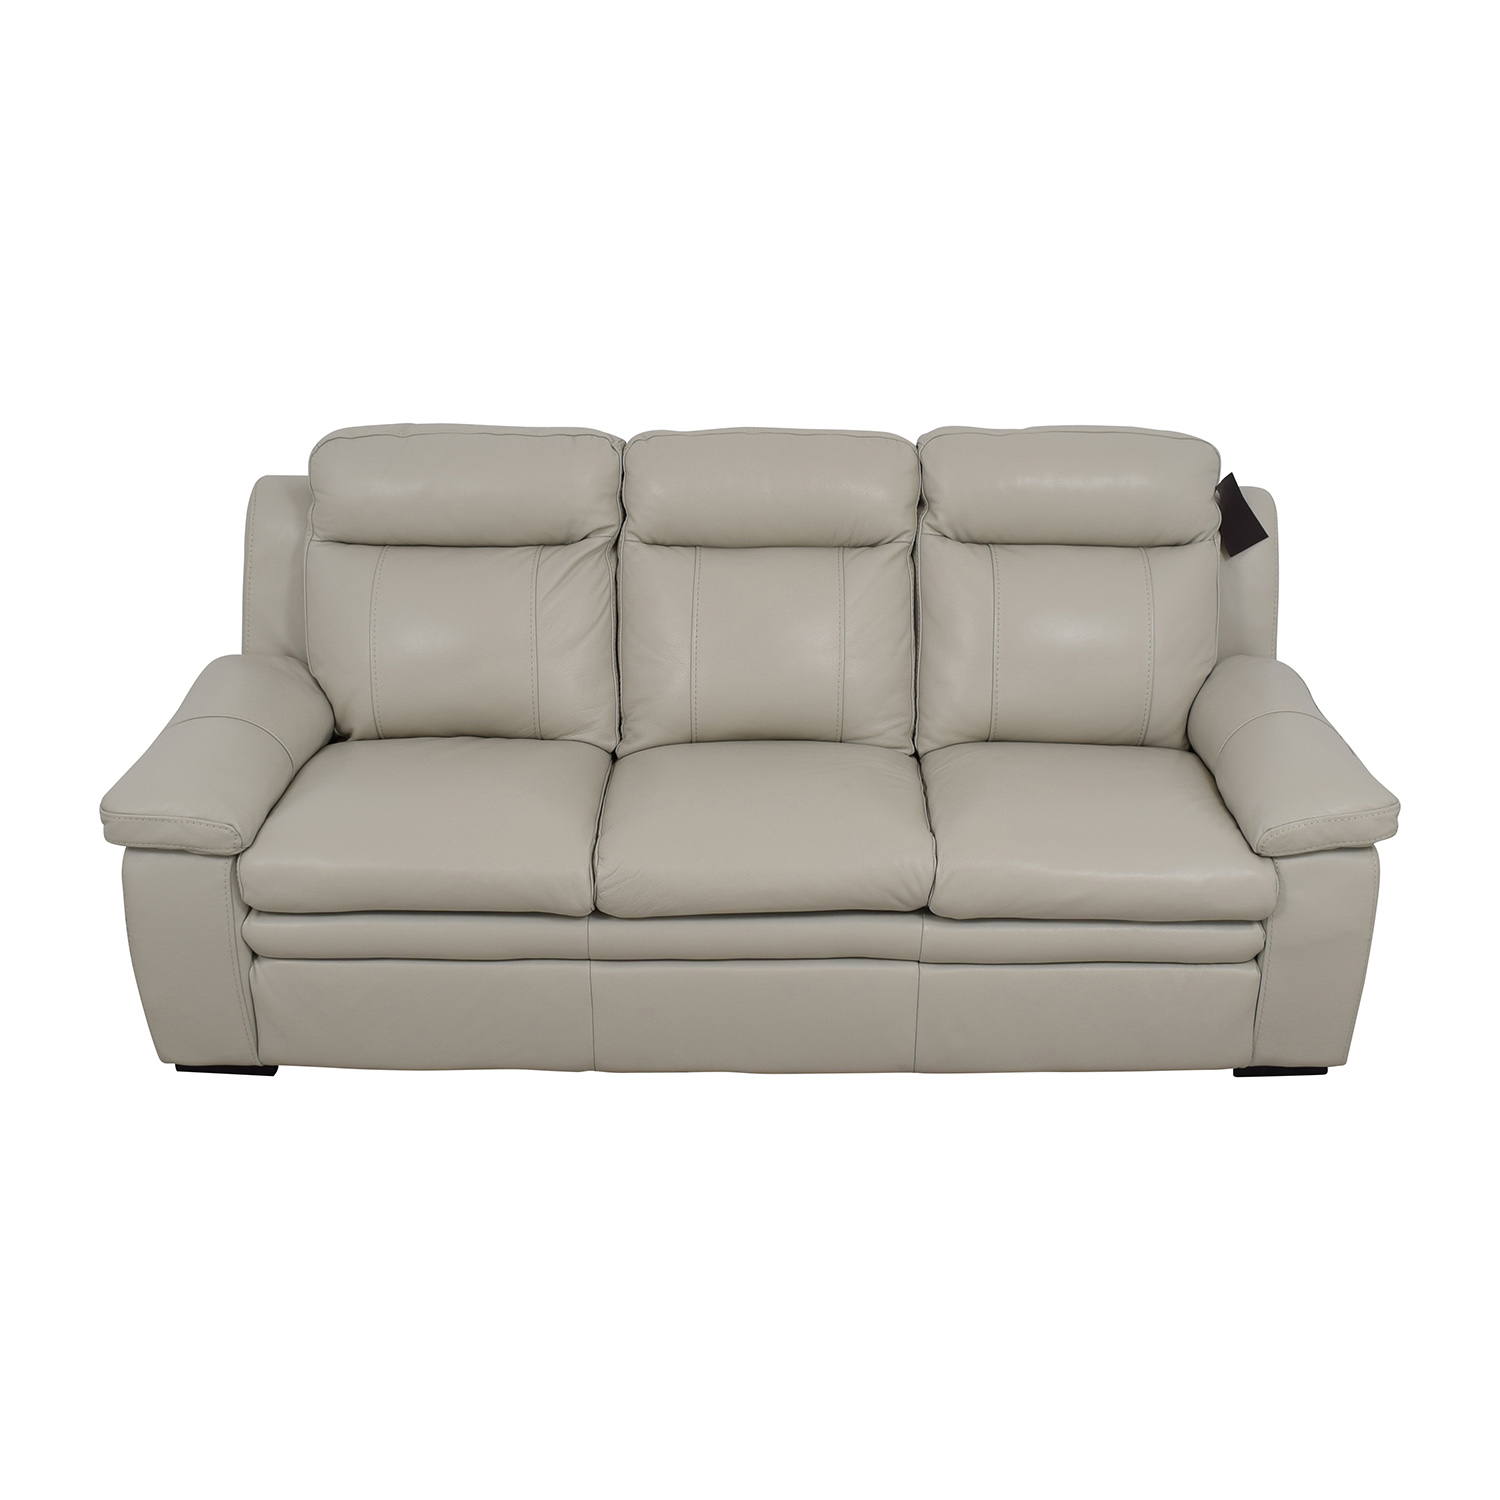 Macys Macys Zane White Leather Sofa for sale